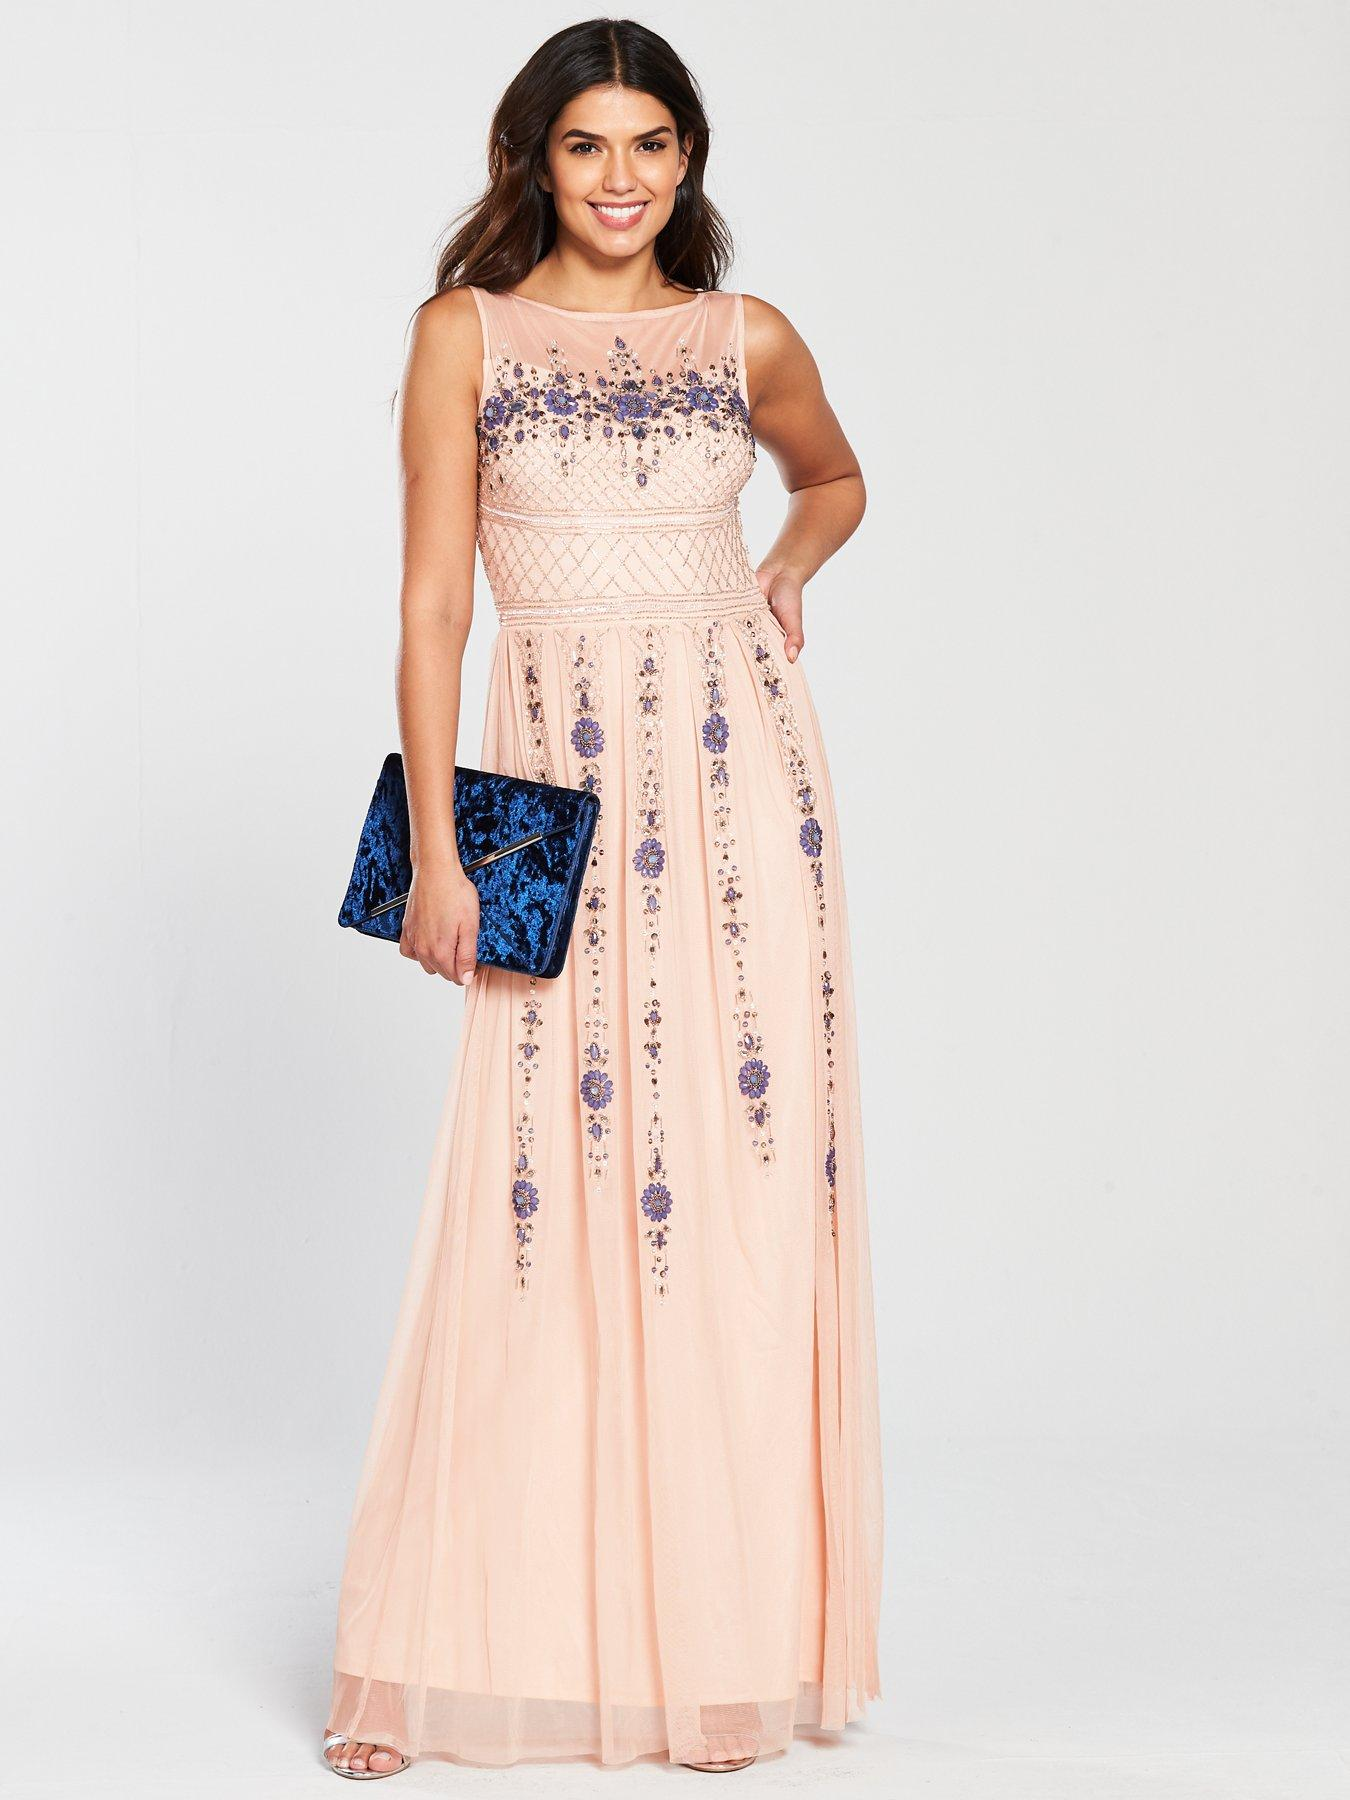 Summer beach maxi dresses uk online